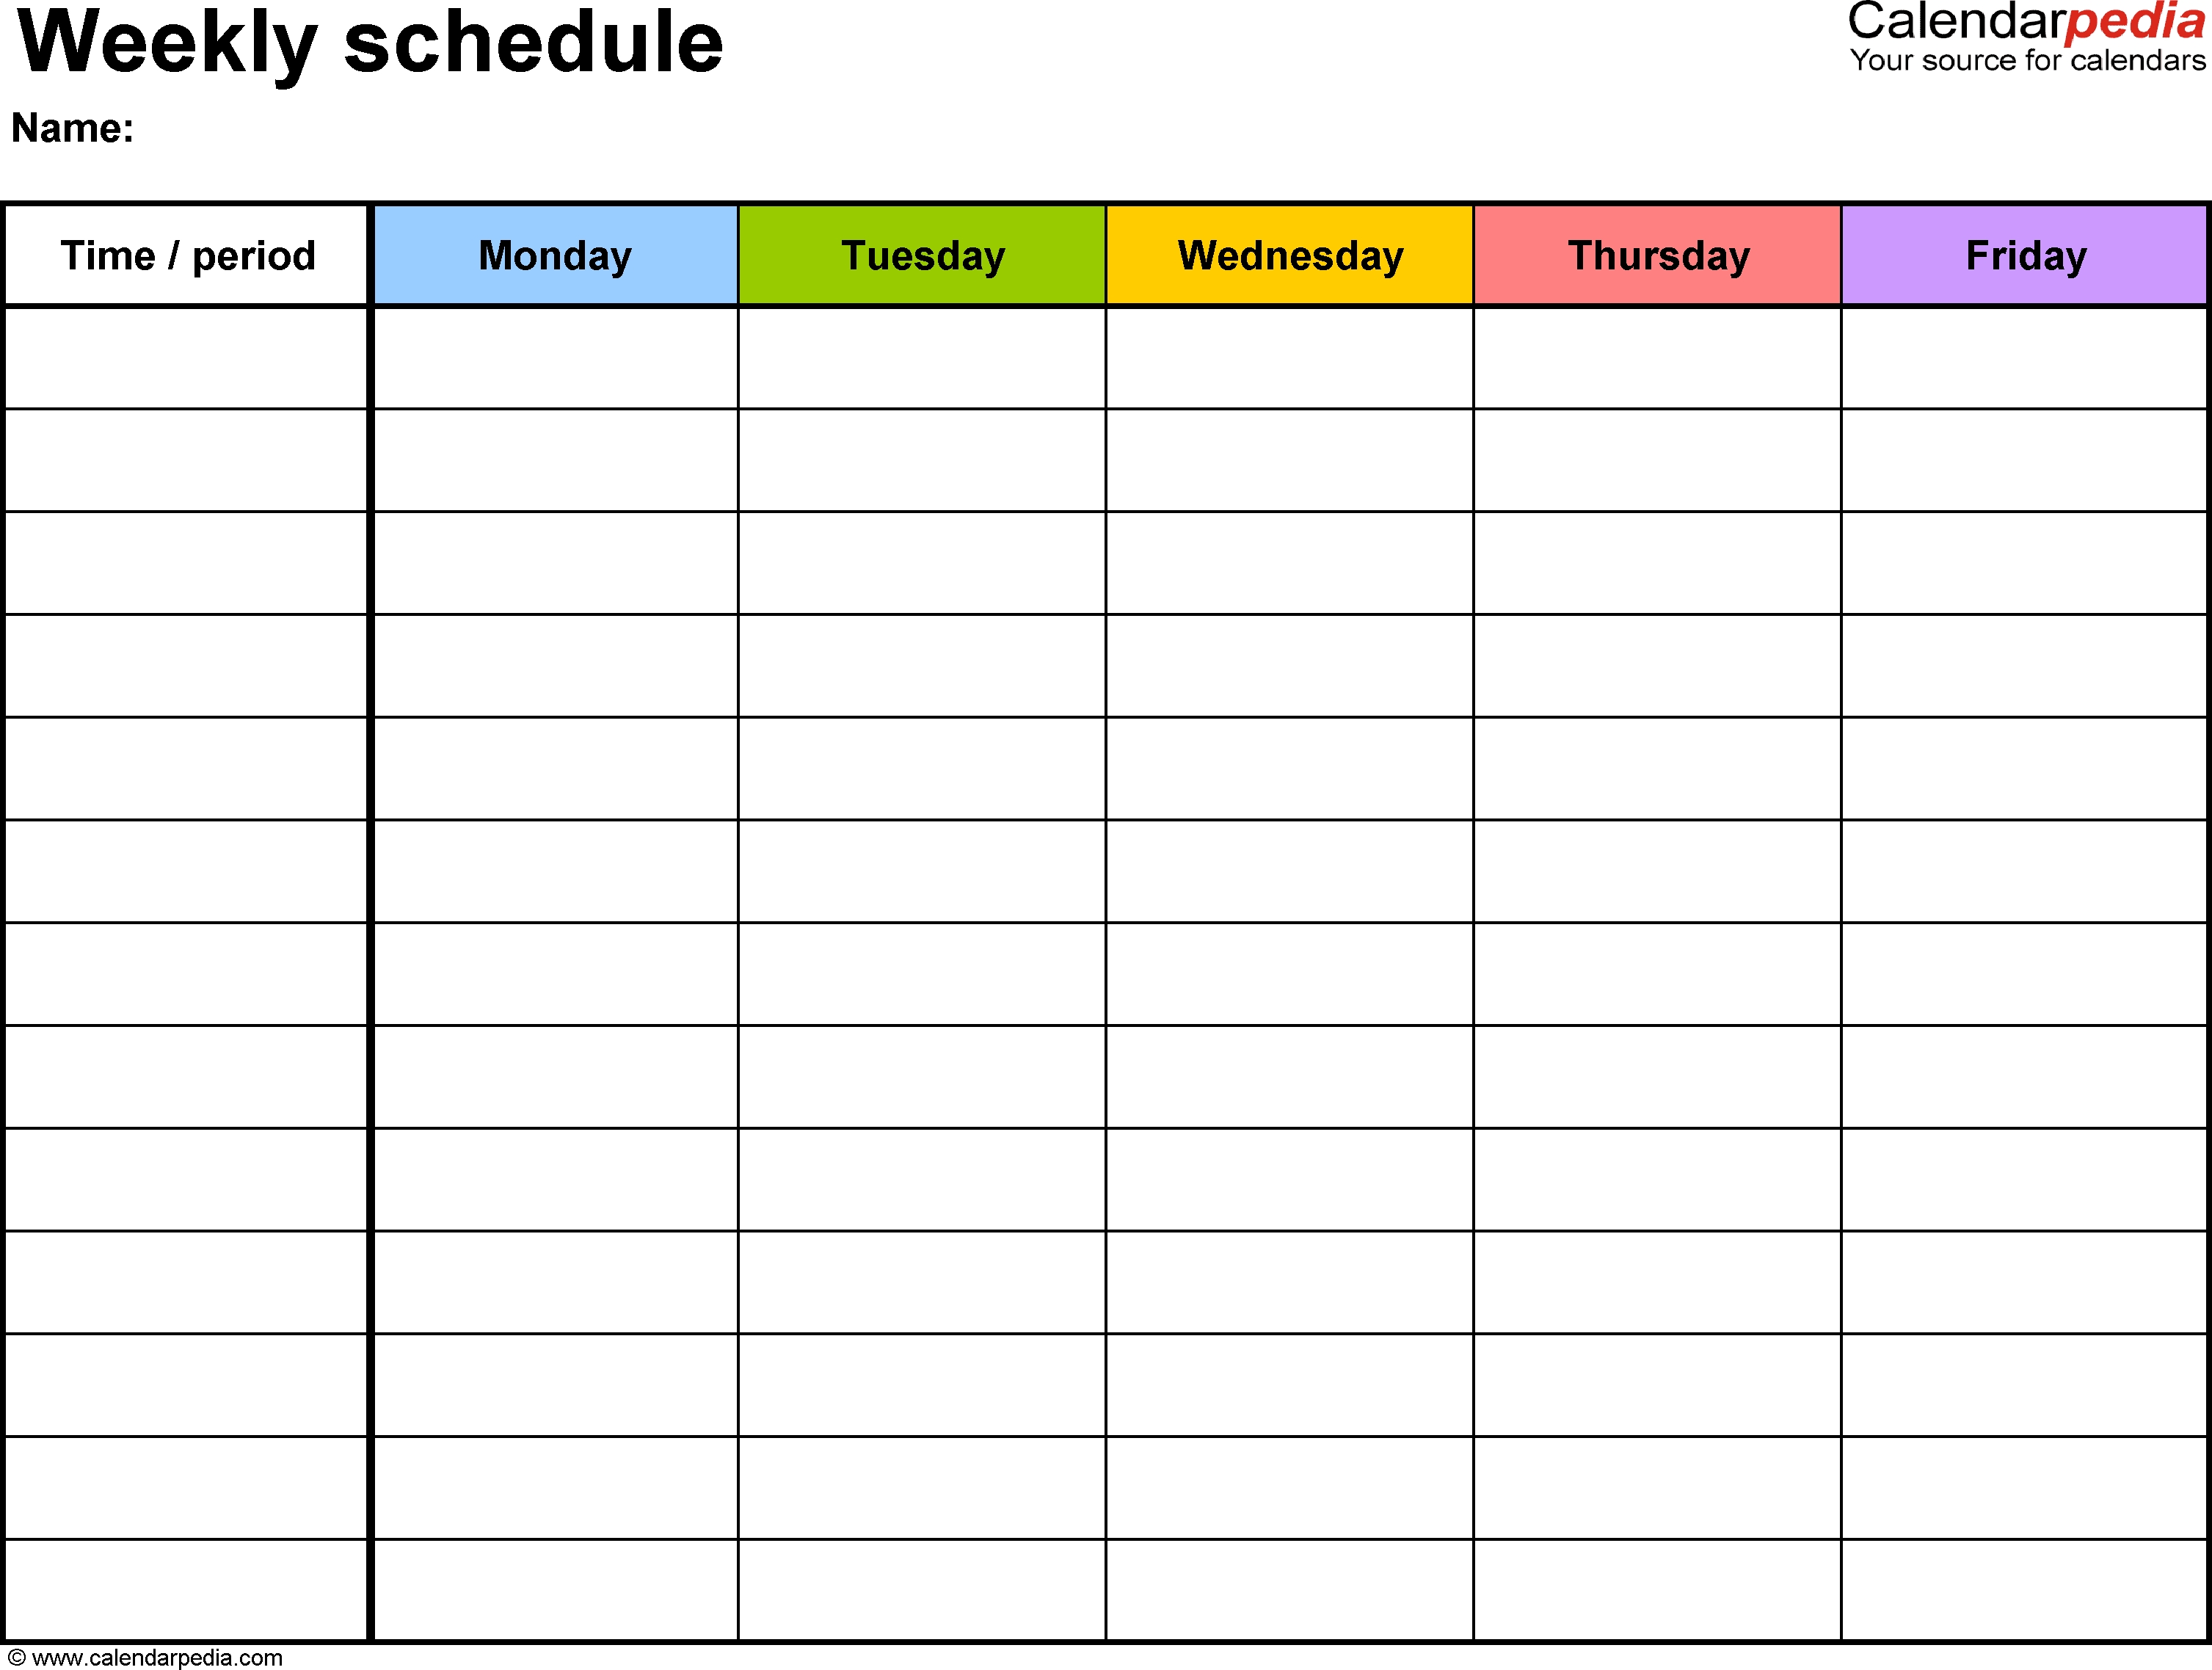 Free Weekly Schedule Templates For Pdf - 18 Templates pertaining to Calendar By Week With Printable